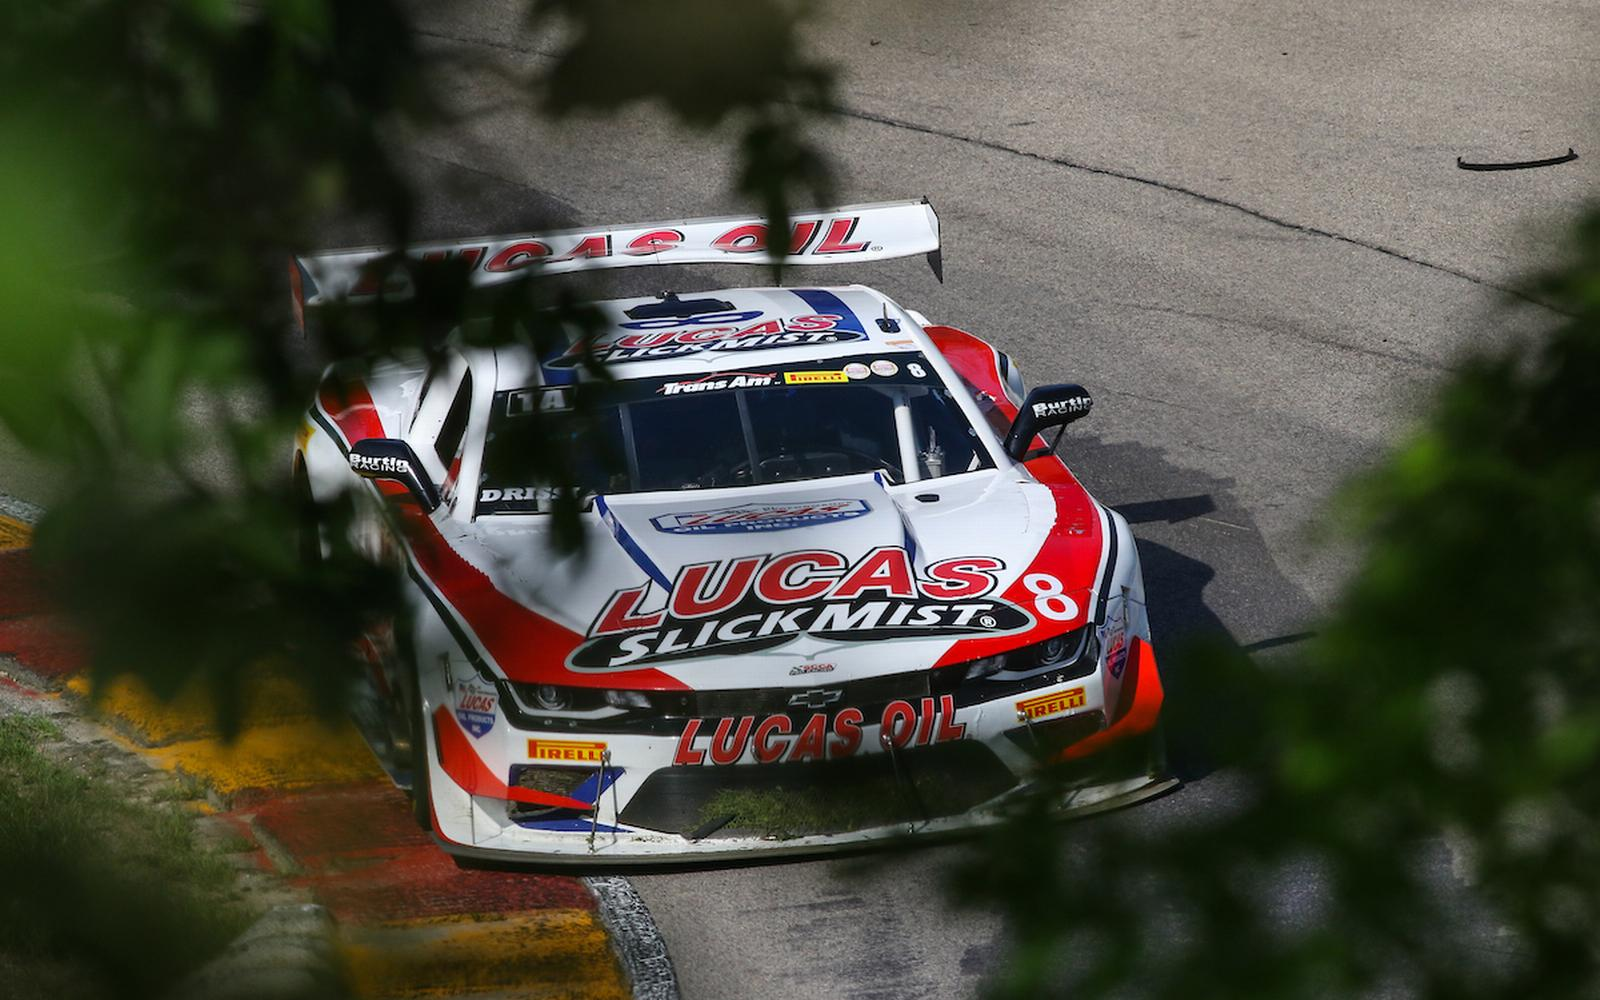 Lucas Oil SlickMist Driver Tomy Drissi Looking to Continue Momentum into Road America Weekend